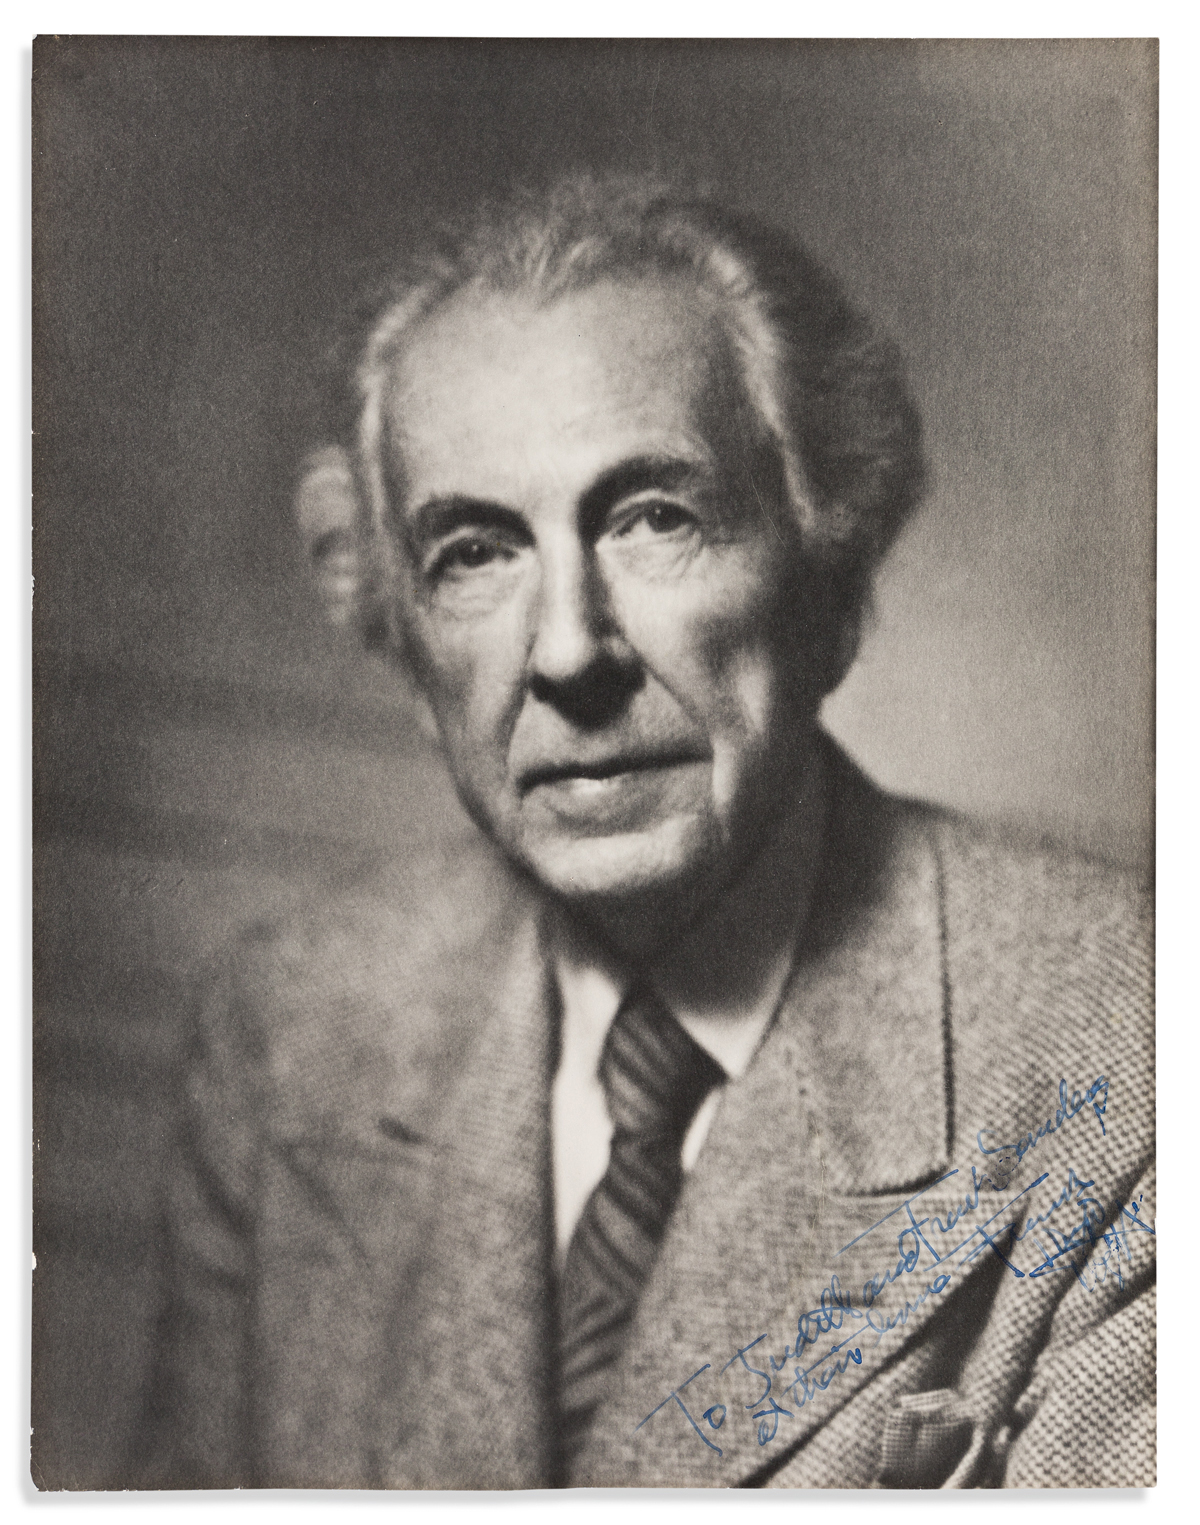 WRIGHT, FRANK LLOYD. Photograph Signed and Inscribed, To Judith and Frank Sanders / at their home / Frank / Lloyd / Wright,